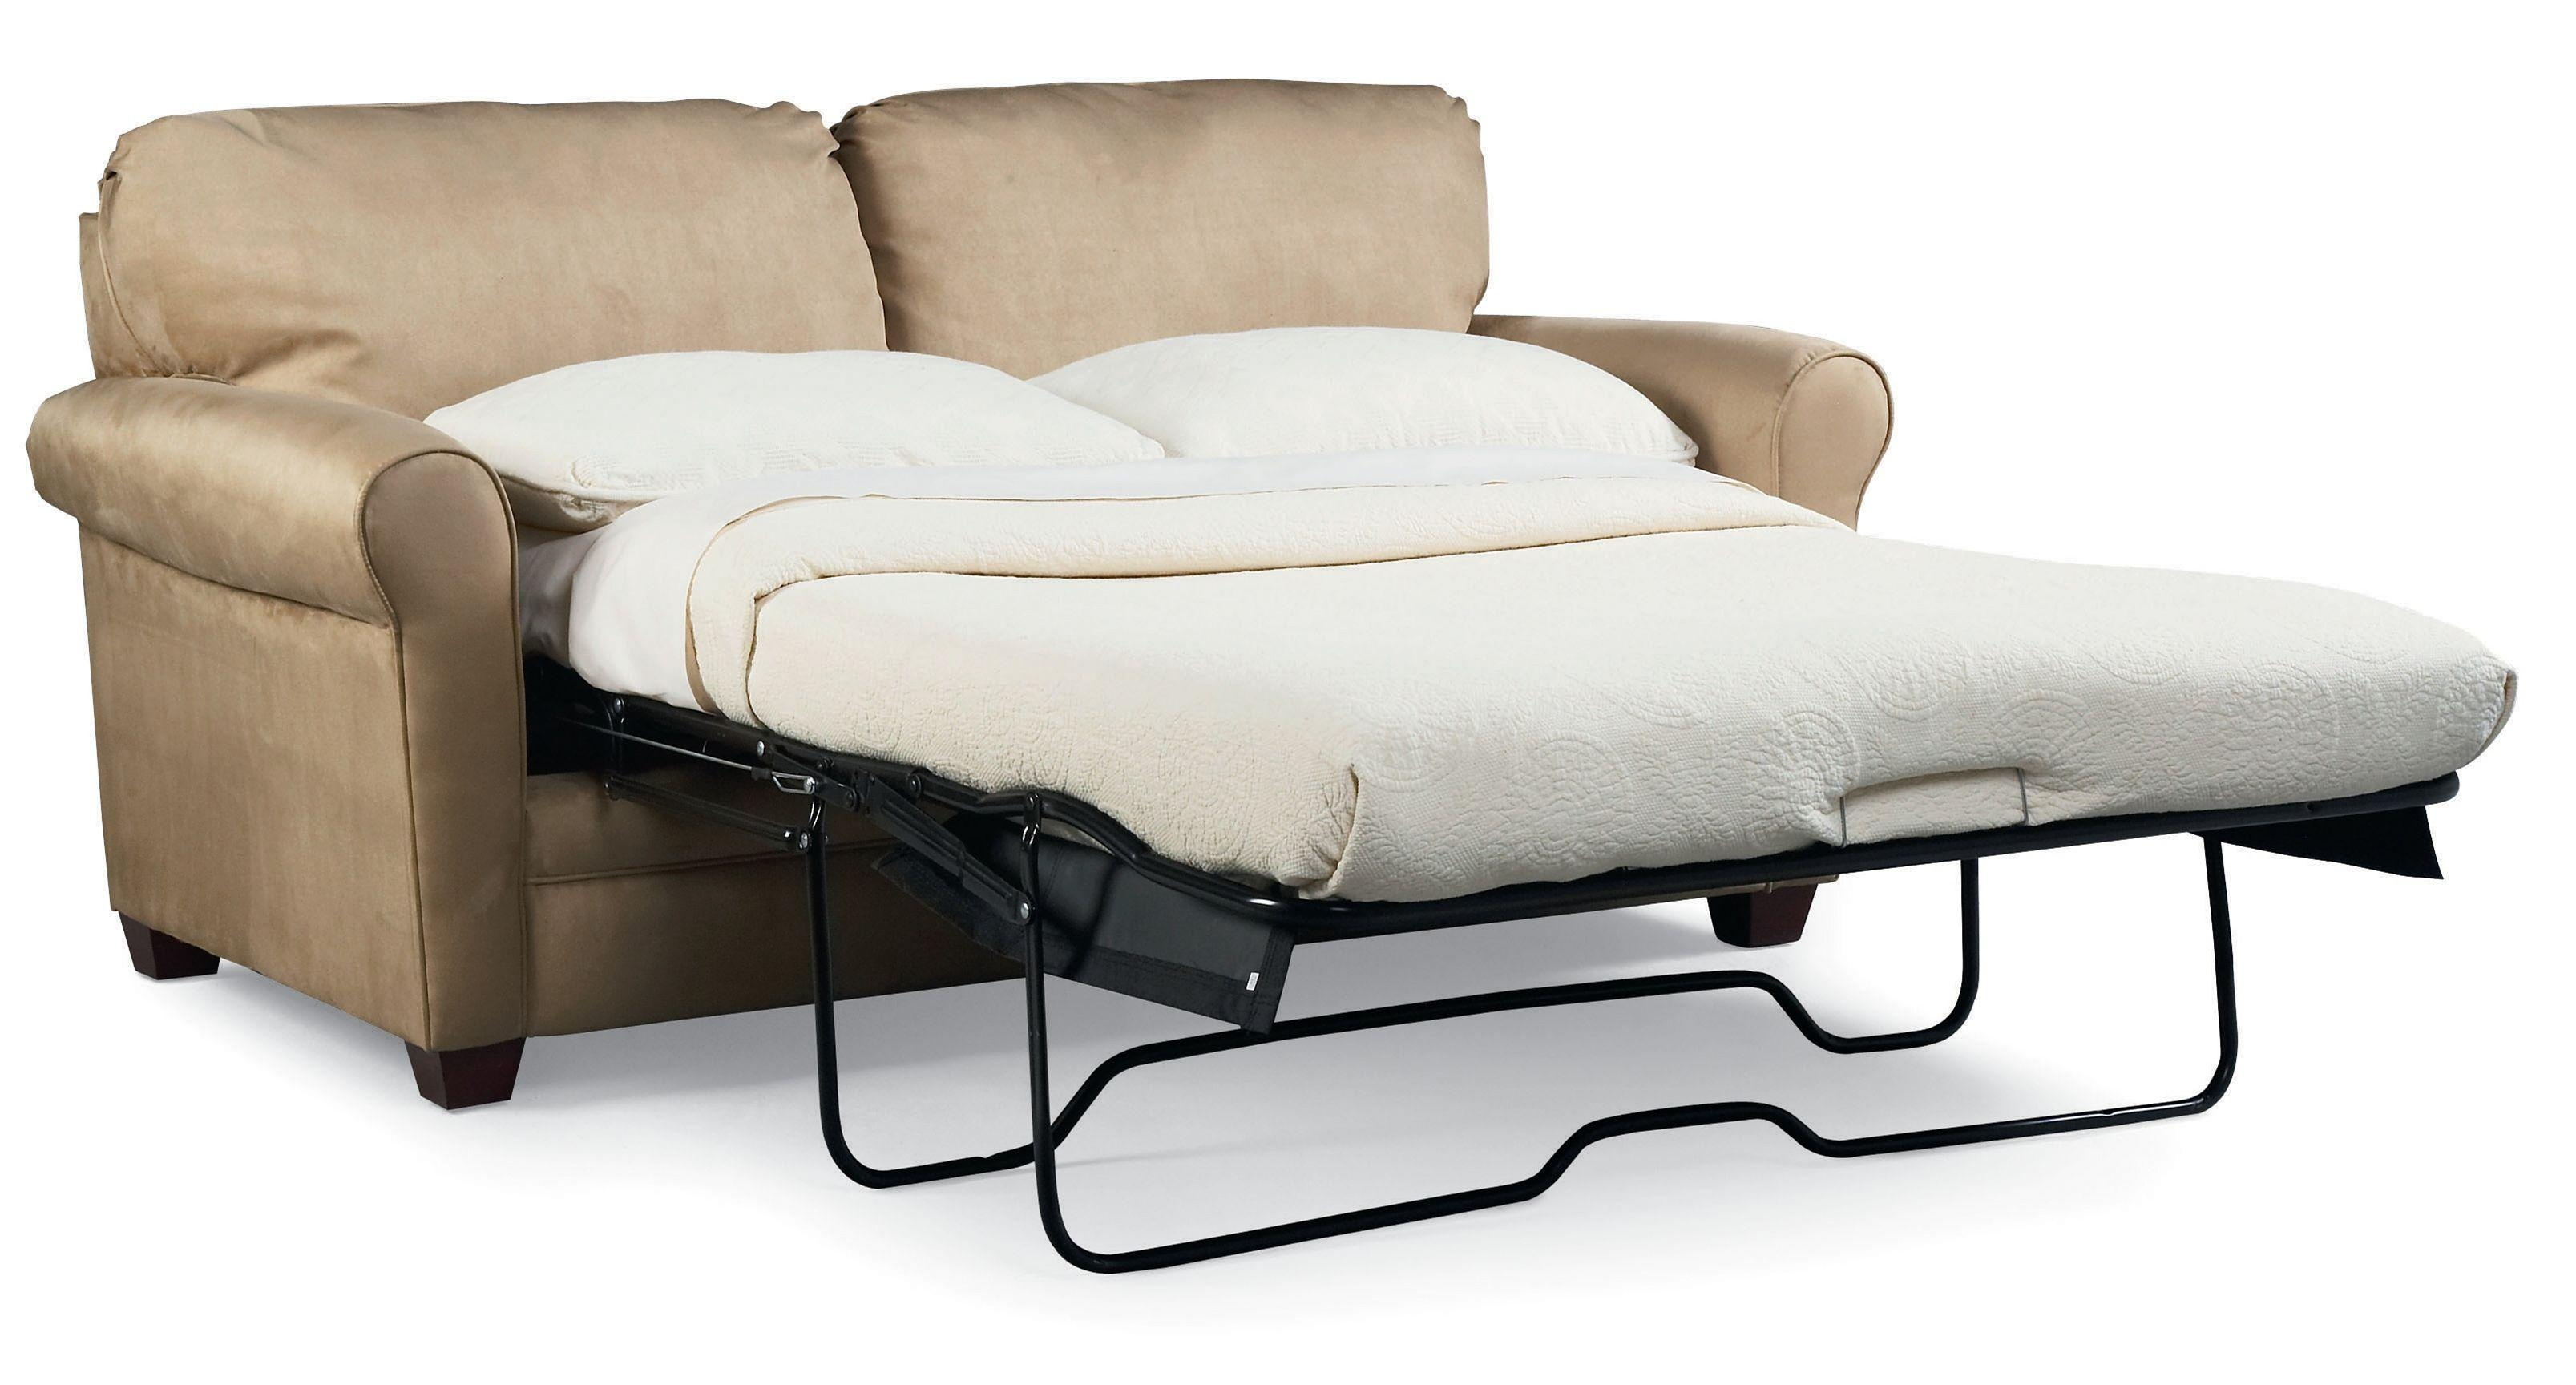 Sofas Center : Modernleeperofa Queen Convertible Beds Yliving Within Queen Convertible Sofas (Image 17 of 20)